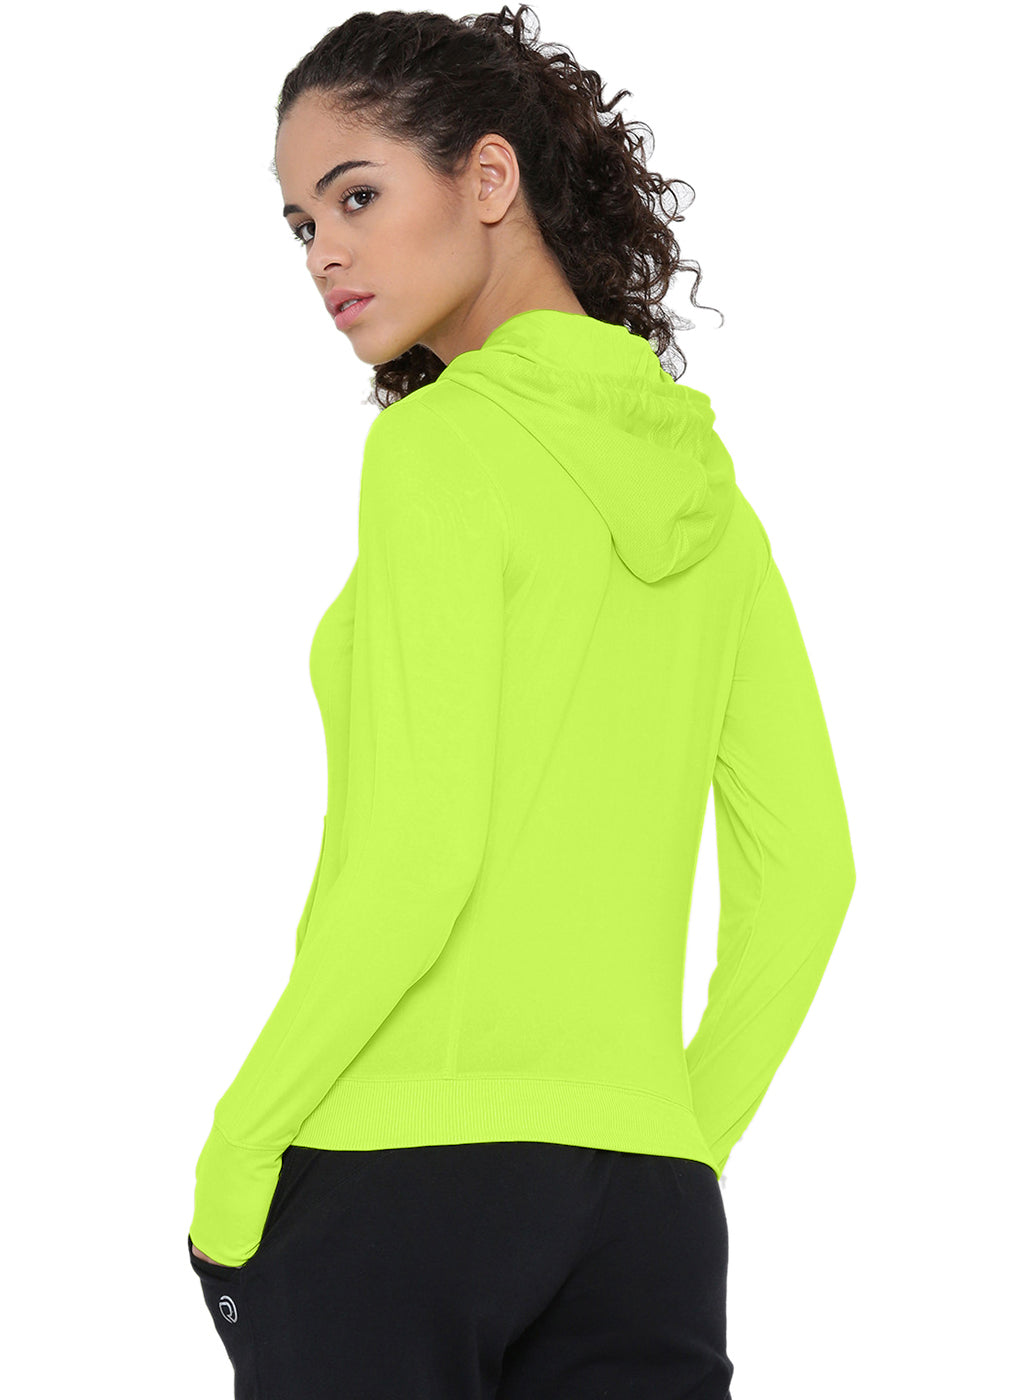 Shorts With Phone Pocket - The SPS White